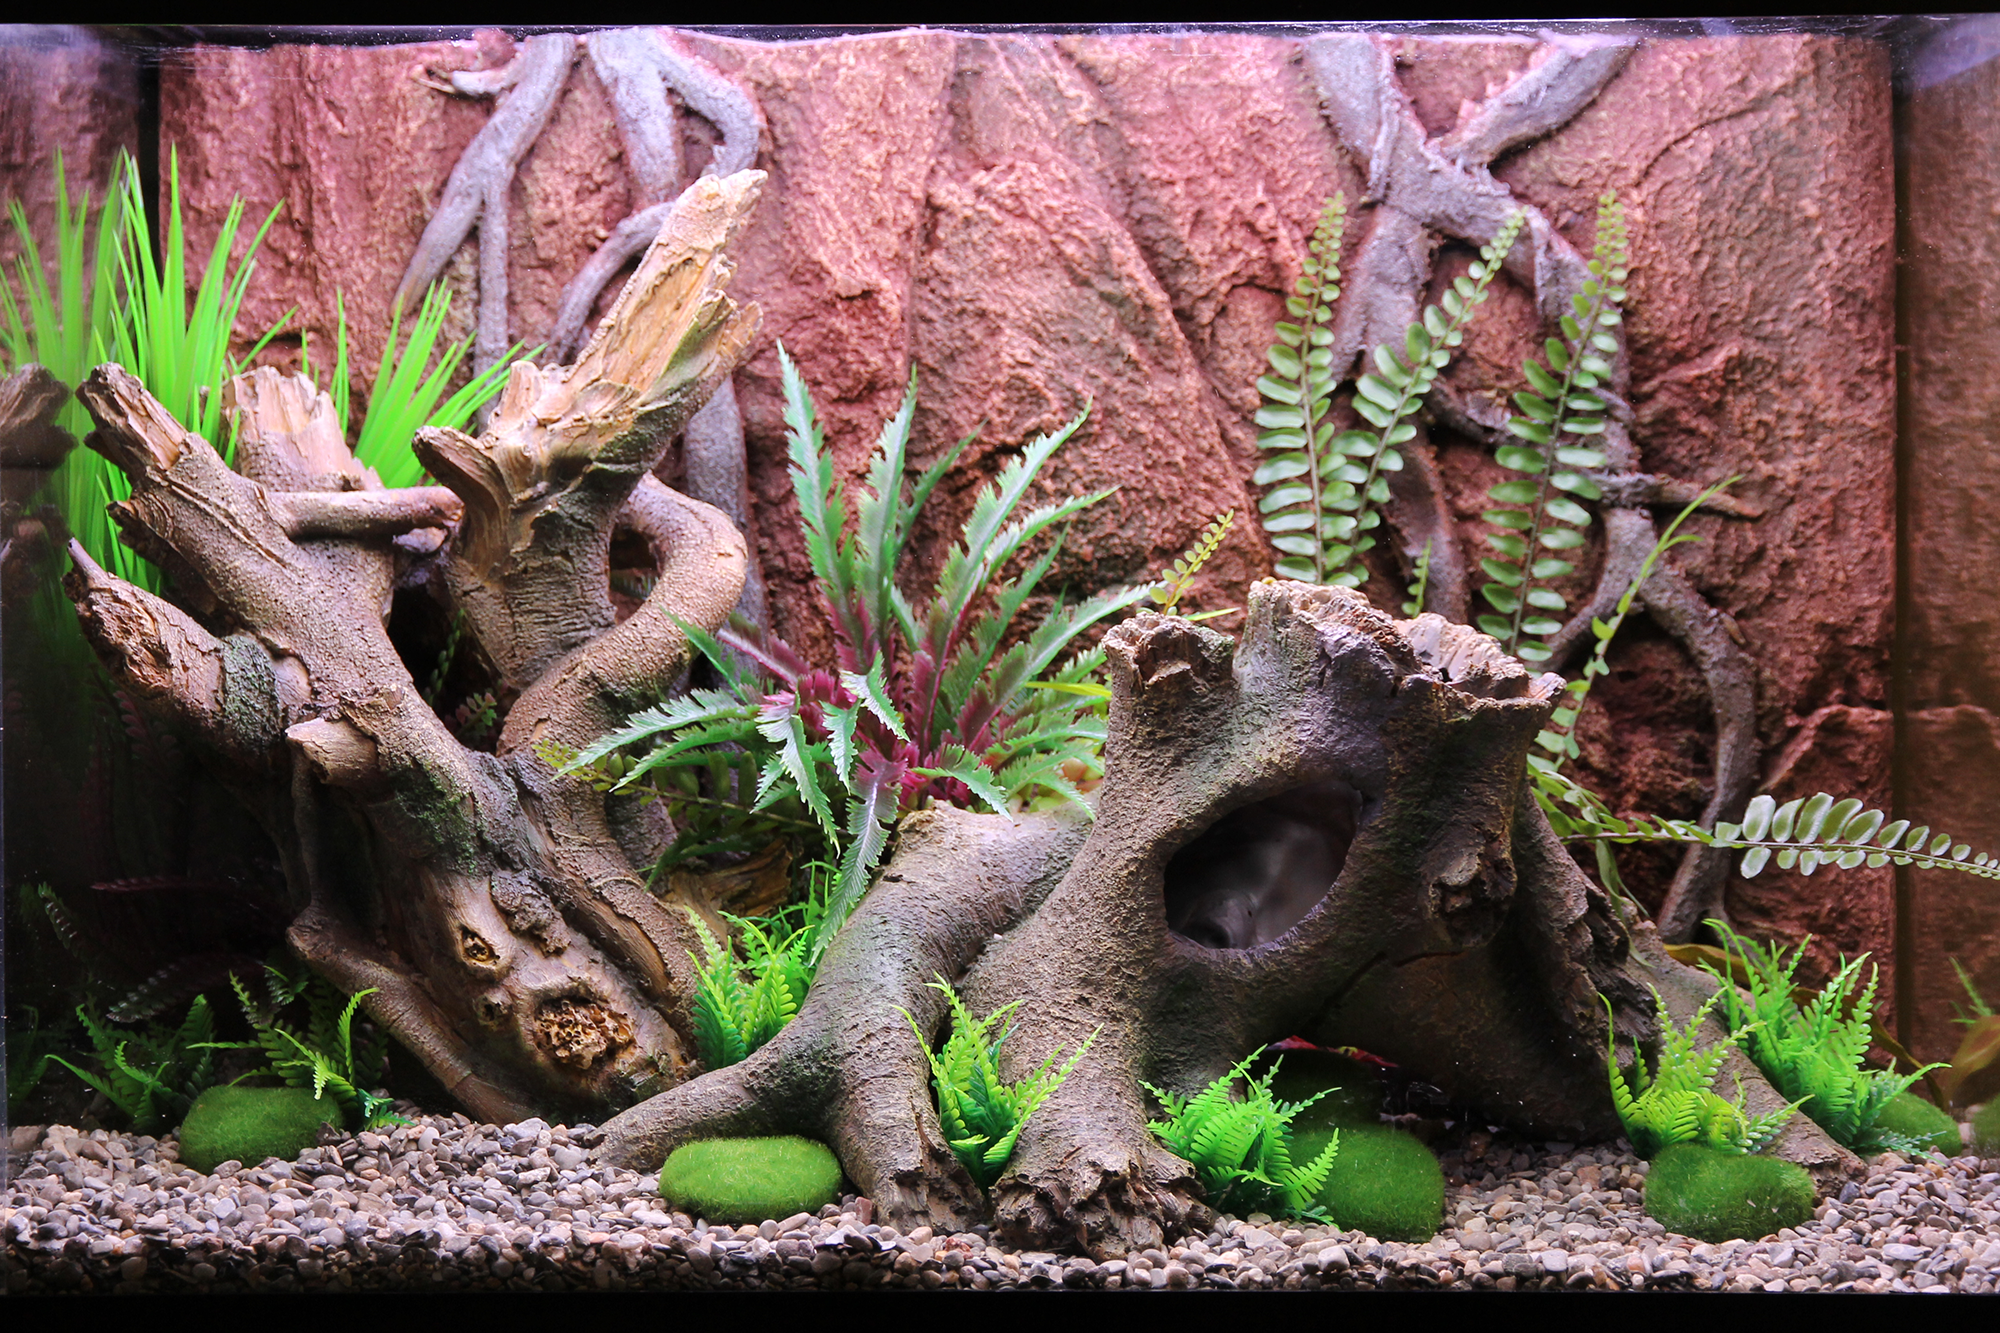 Themed Aquarium of the Month - Cryptic Creek